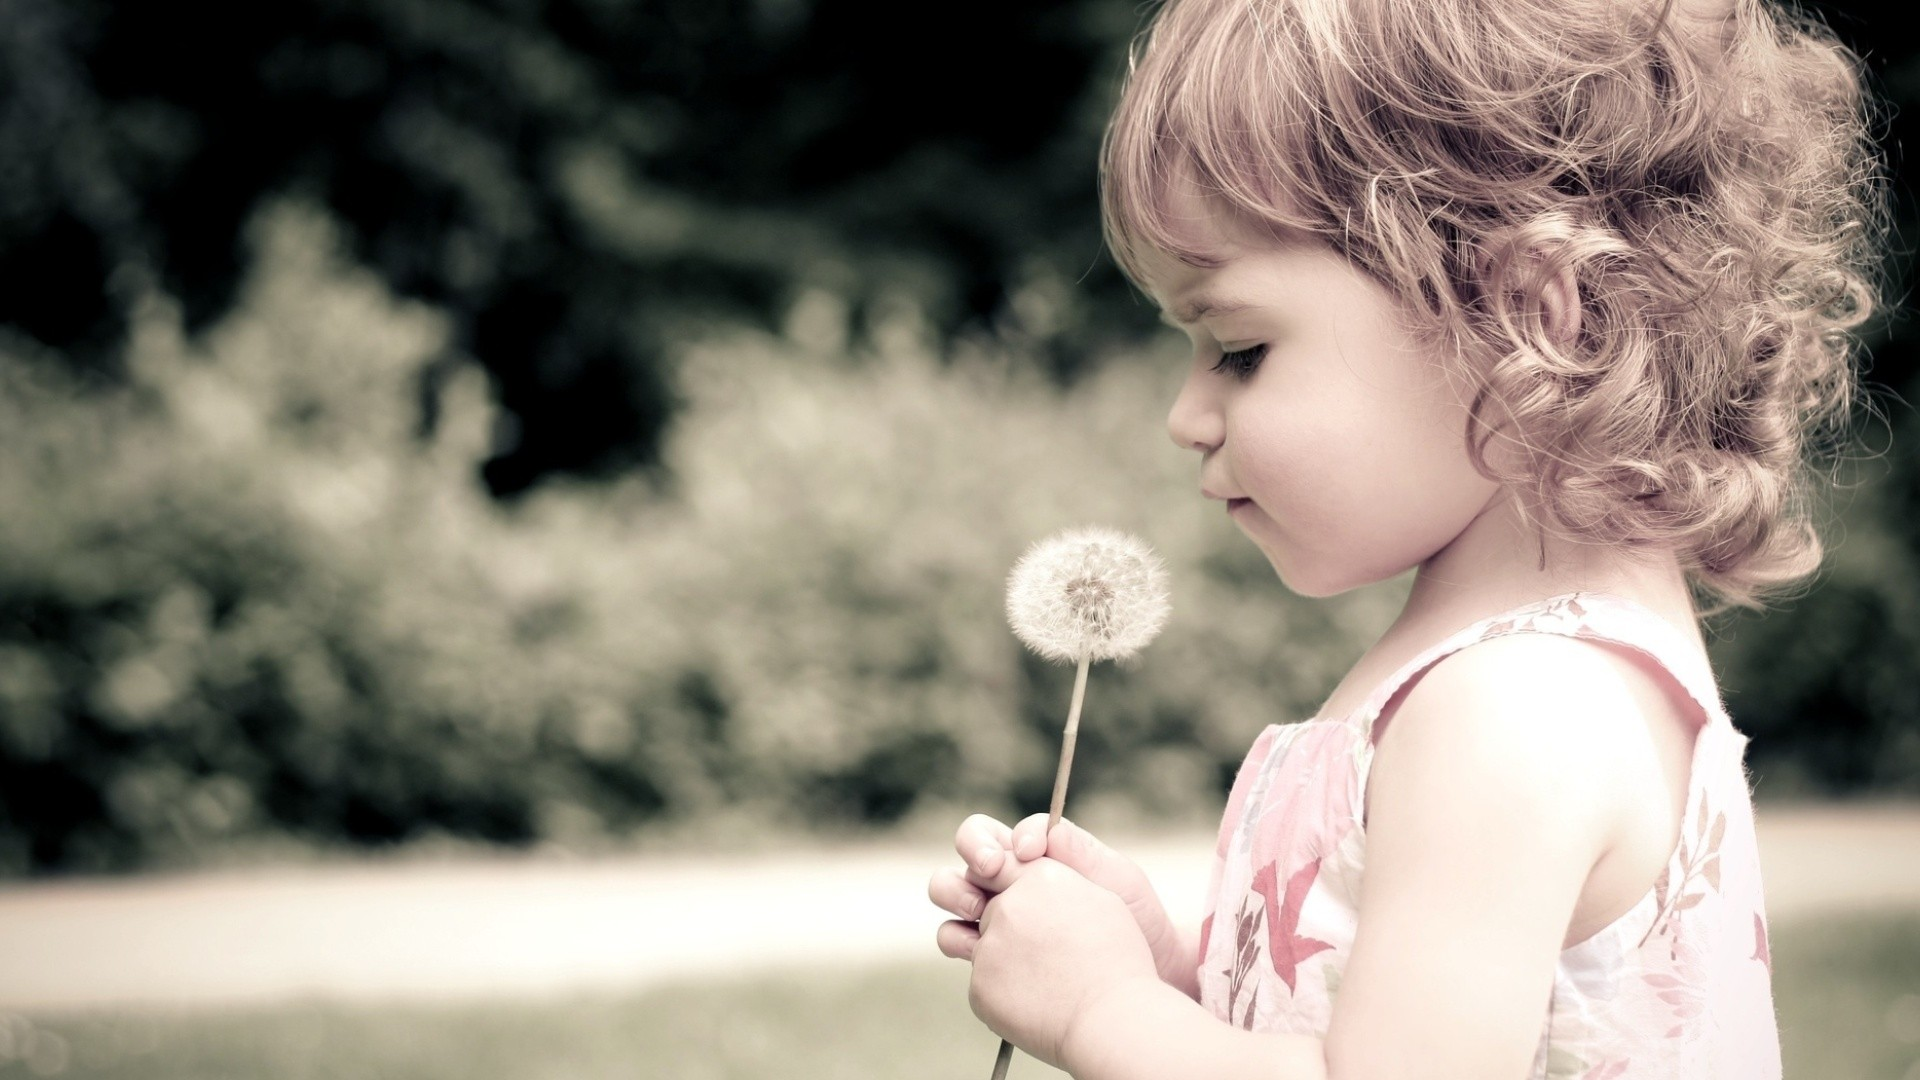 cute-baby-with-dandelion-1920%C3%971080-wallpaper-wp3804276